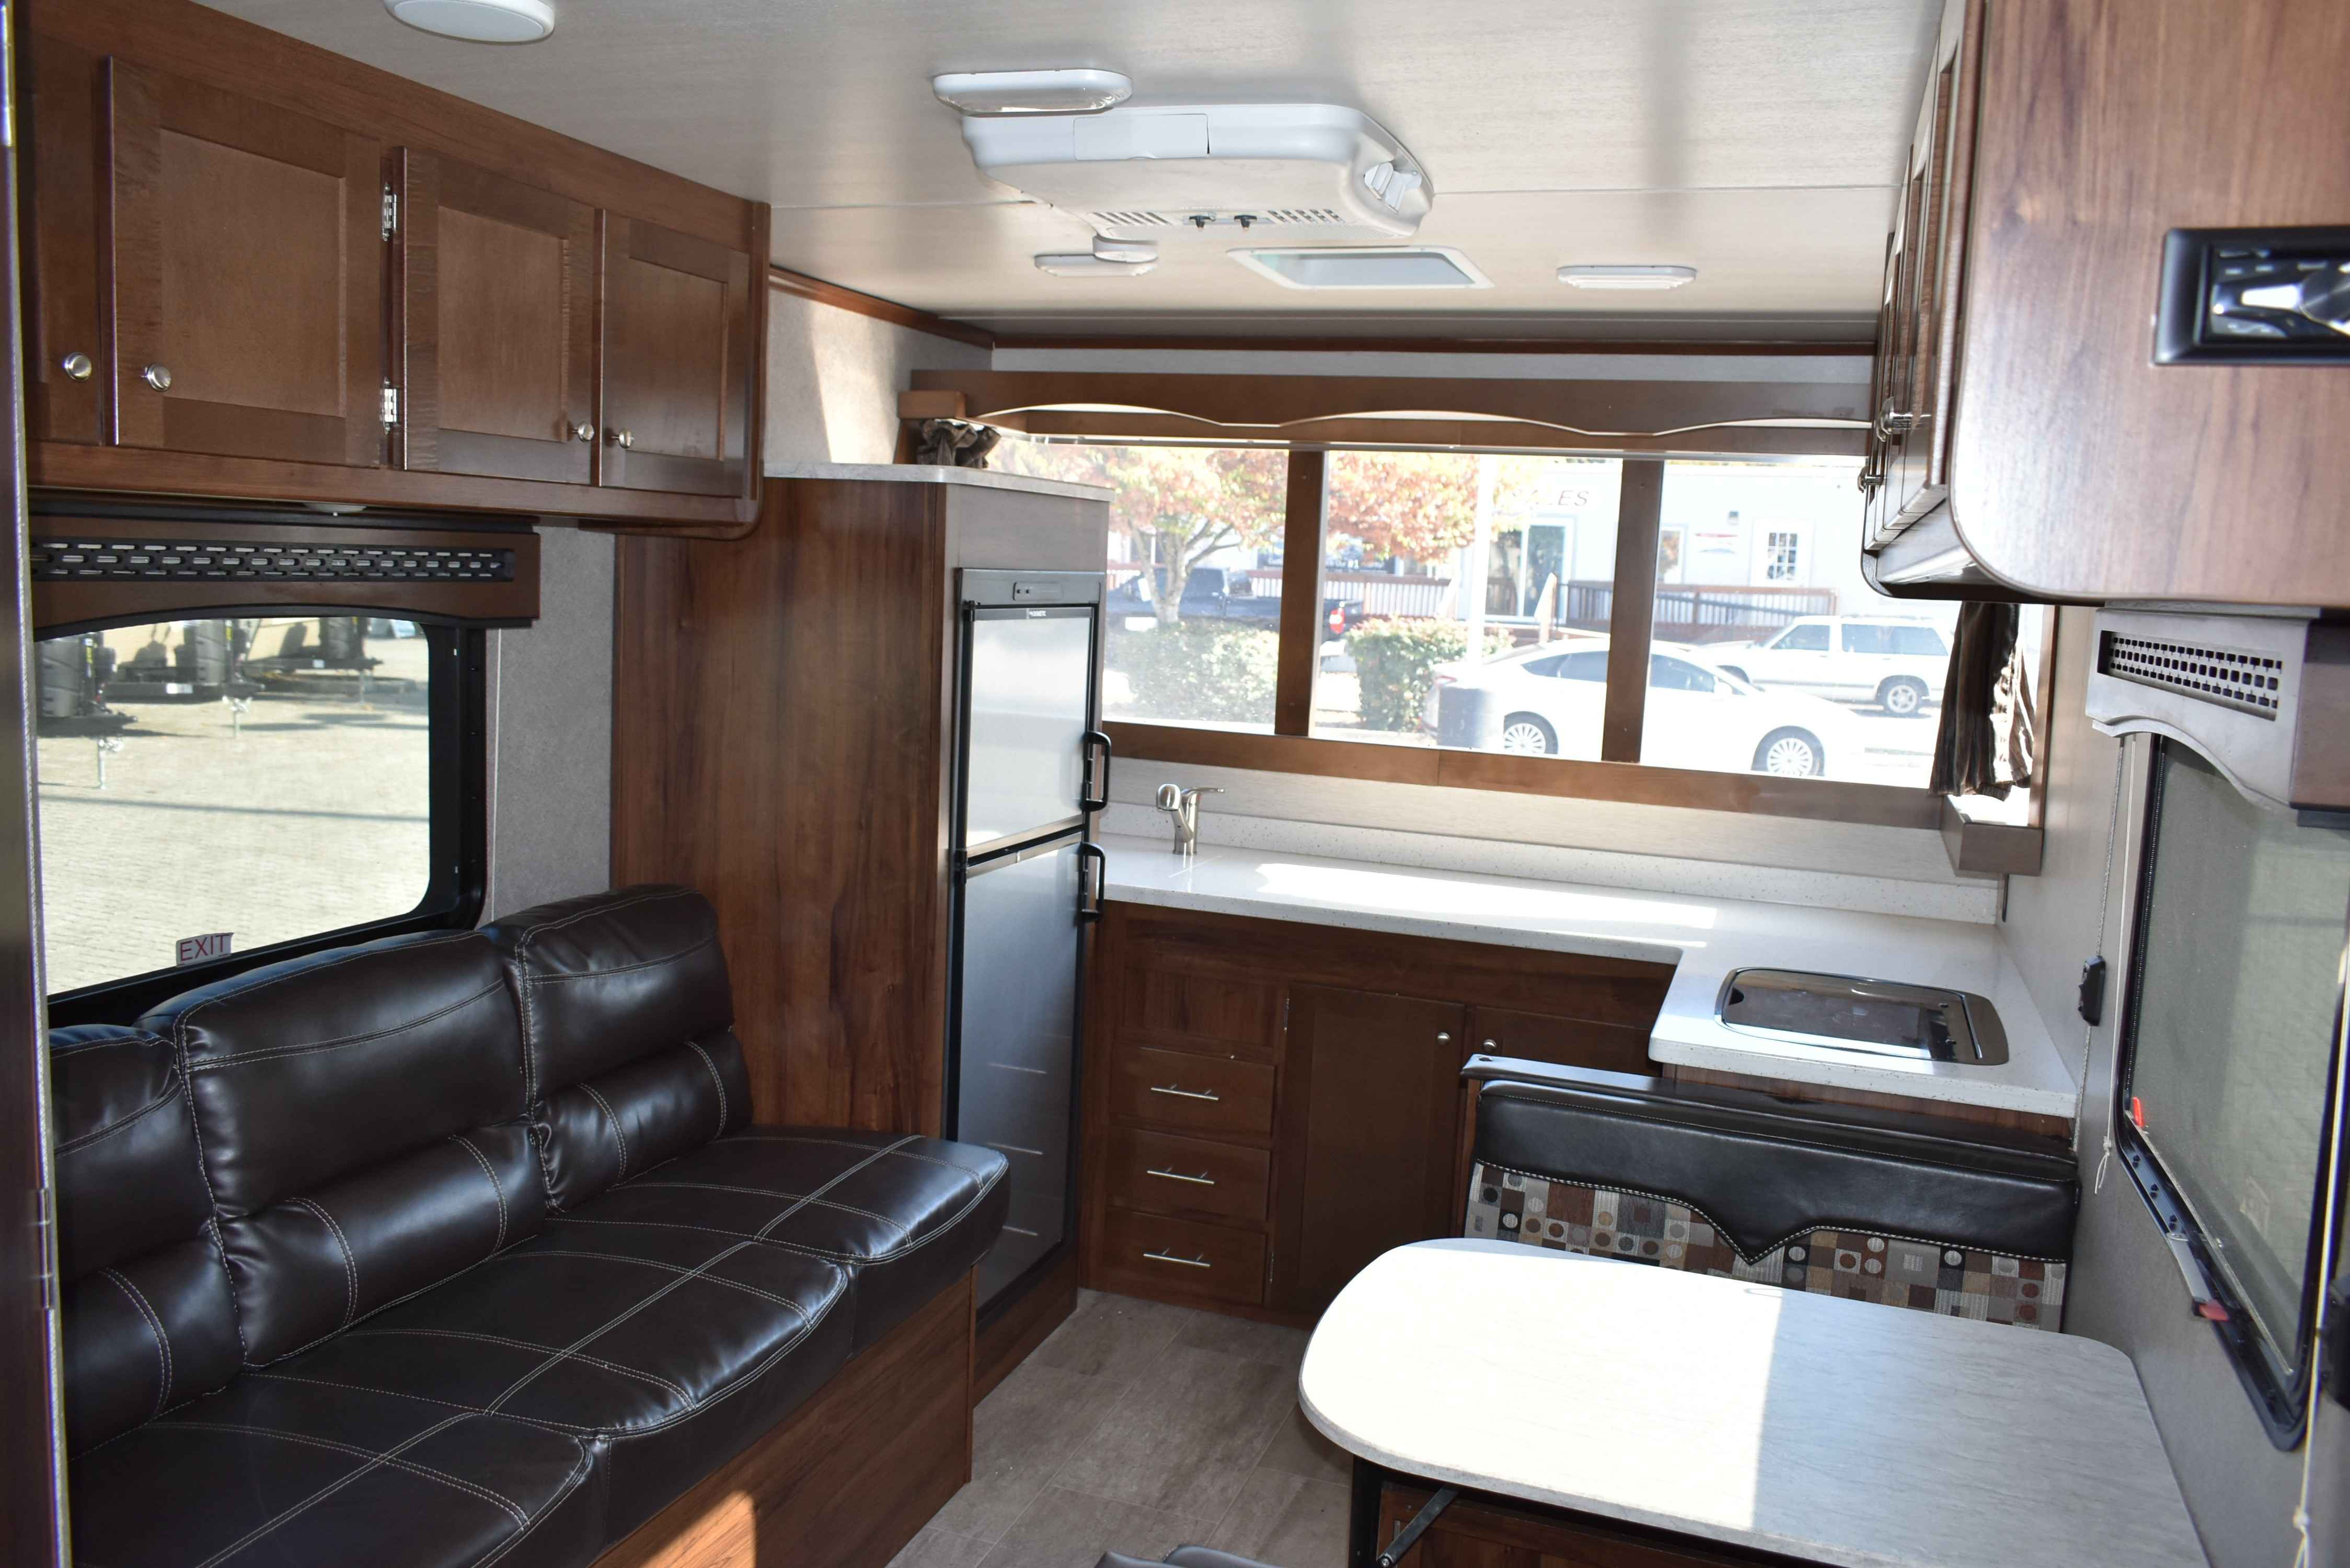 2019 New Heartland Terry Classic Travel Trailer In